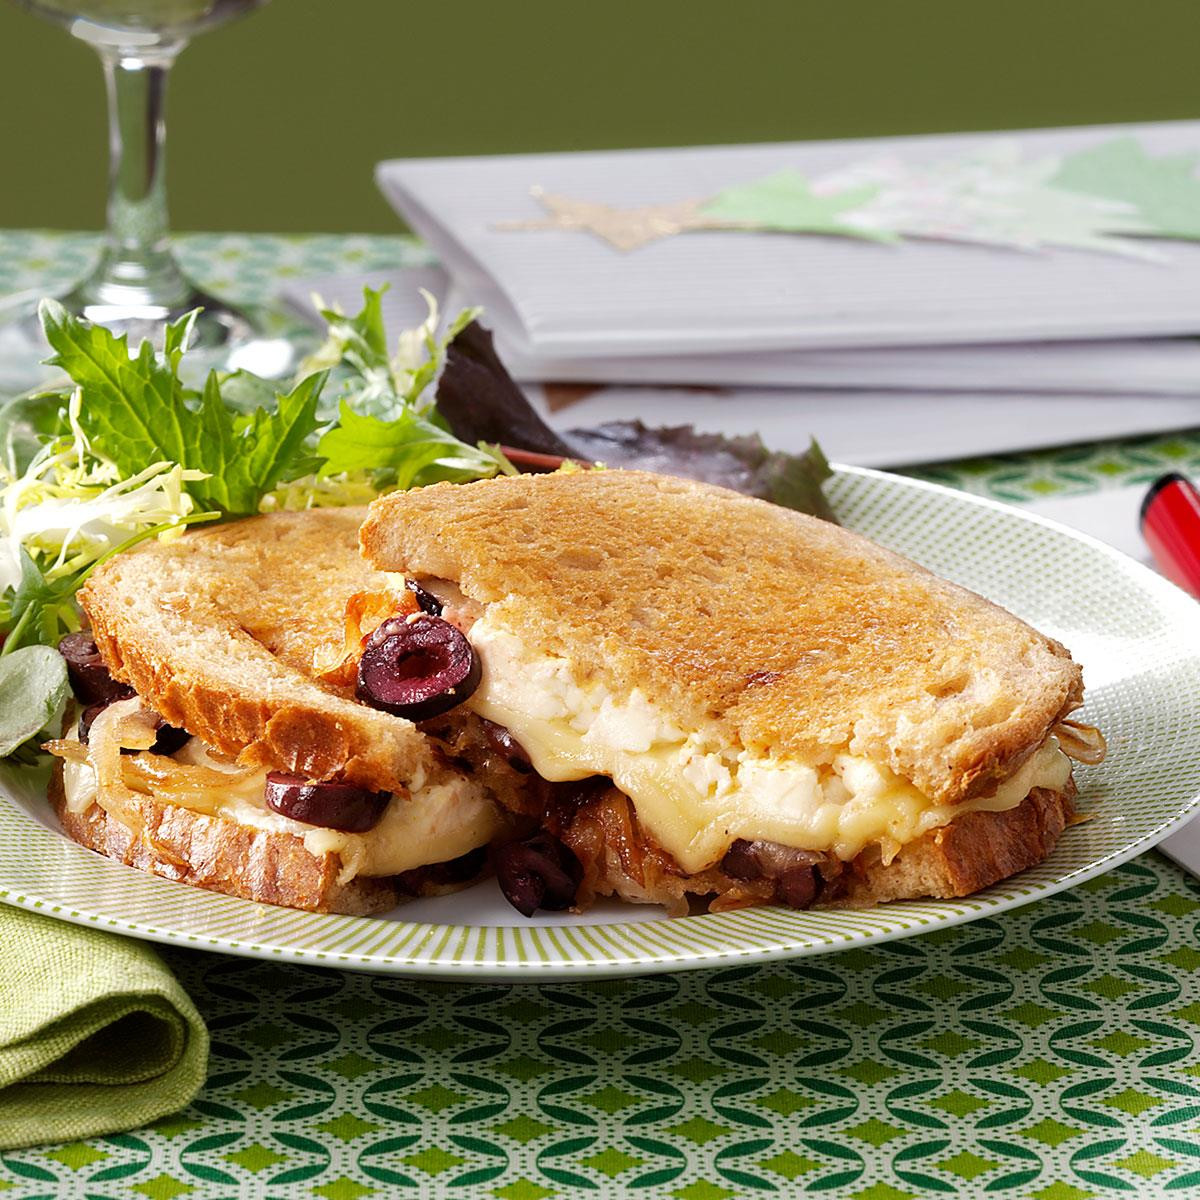 Gourmet Dinner Recipes  Gourmet Grilled Cheese Sandwich Recipe